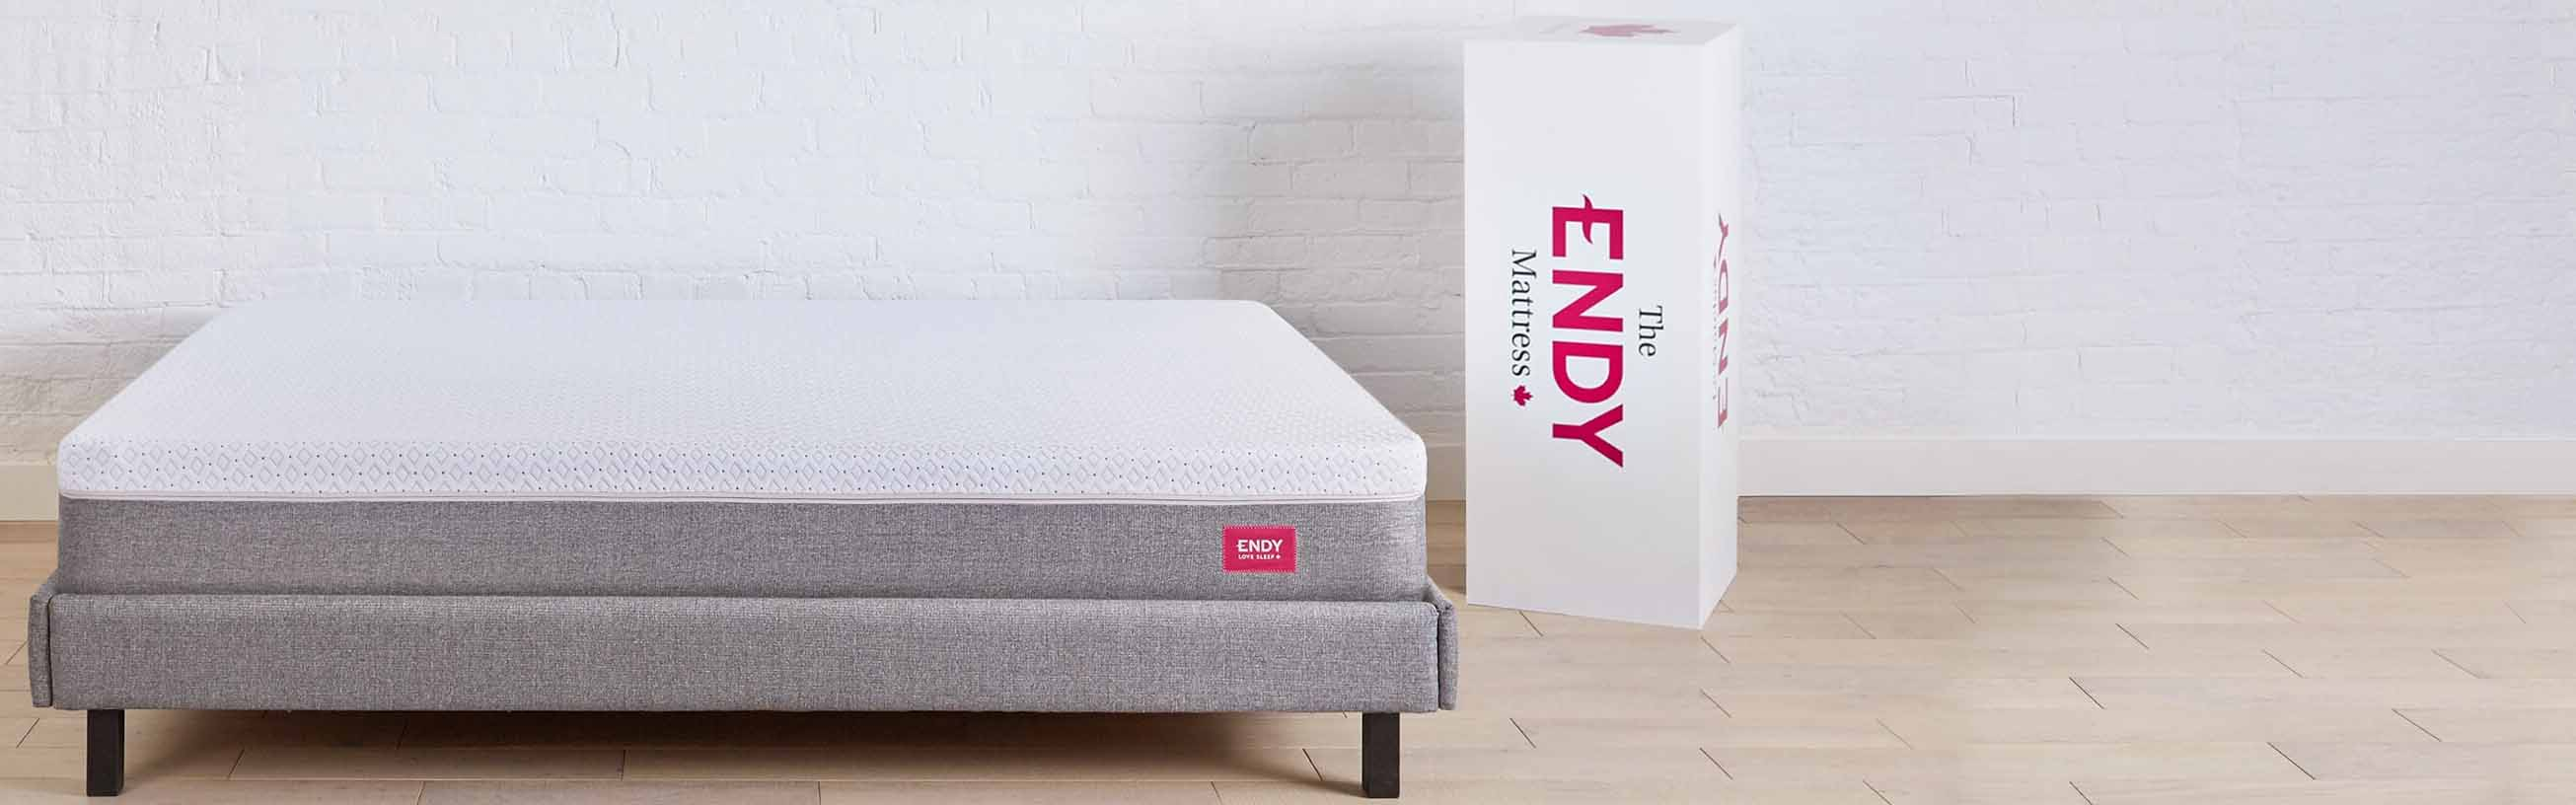 Endy Vs Zinus Which Beds Are Best 2019 Compared